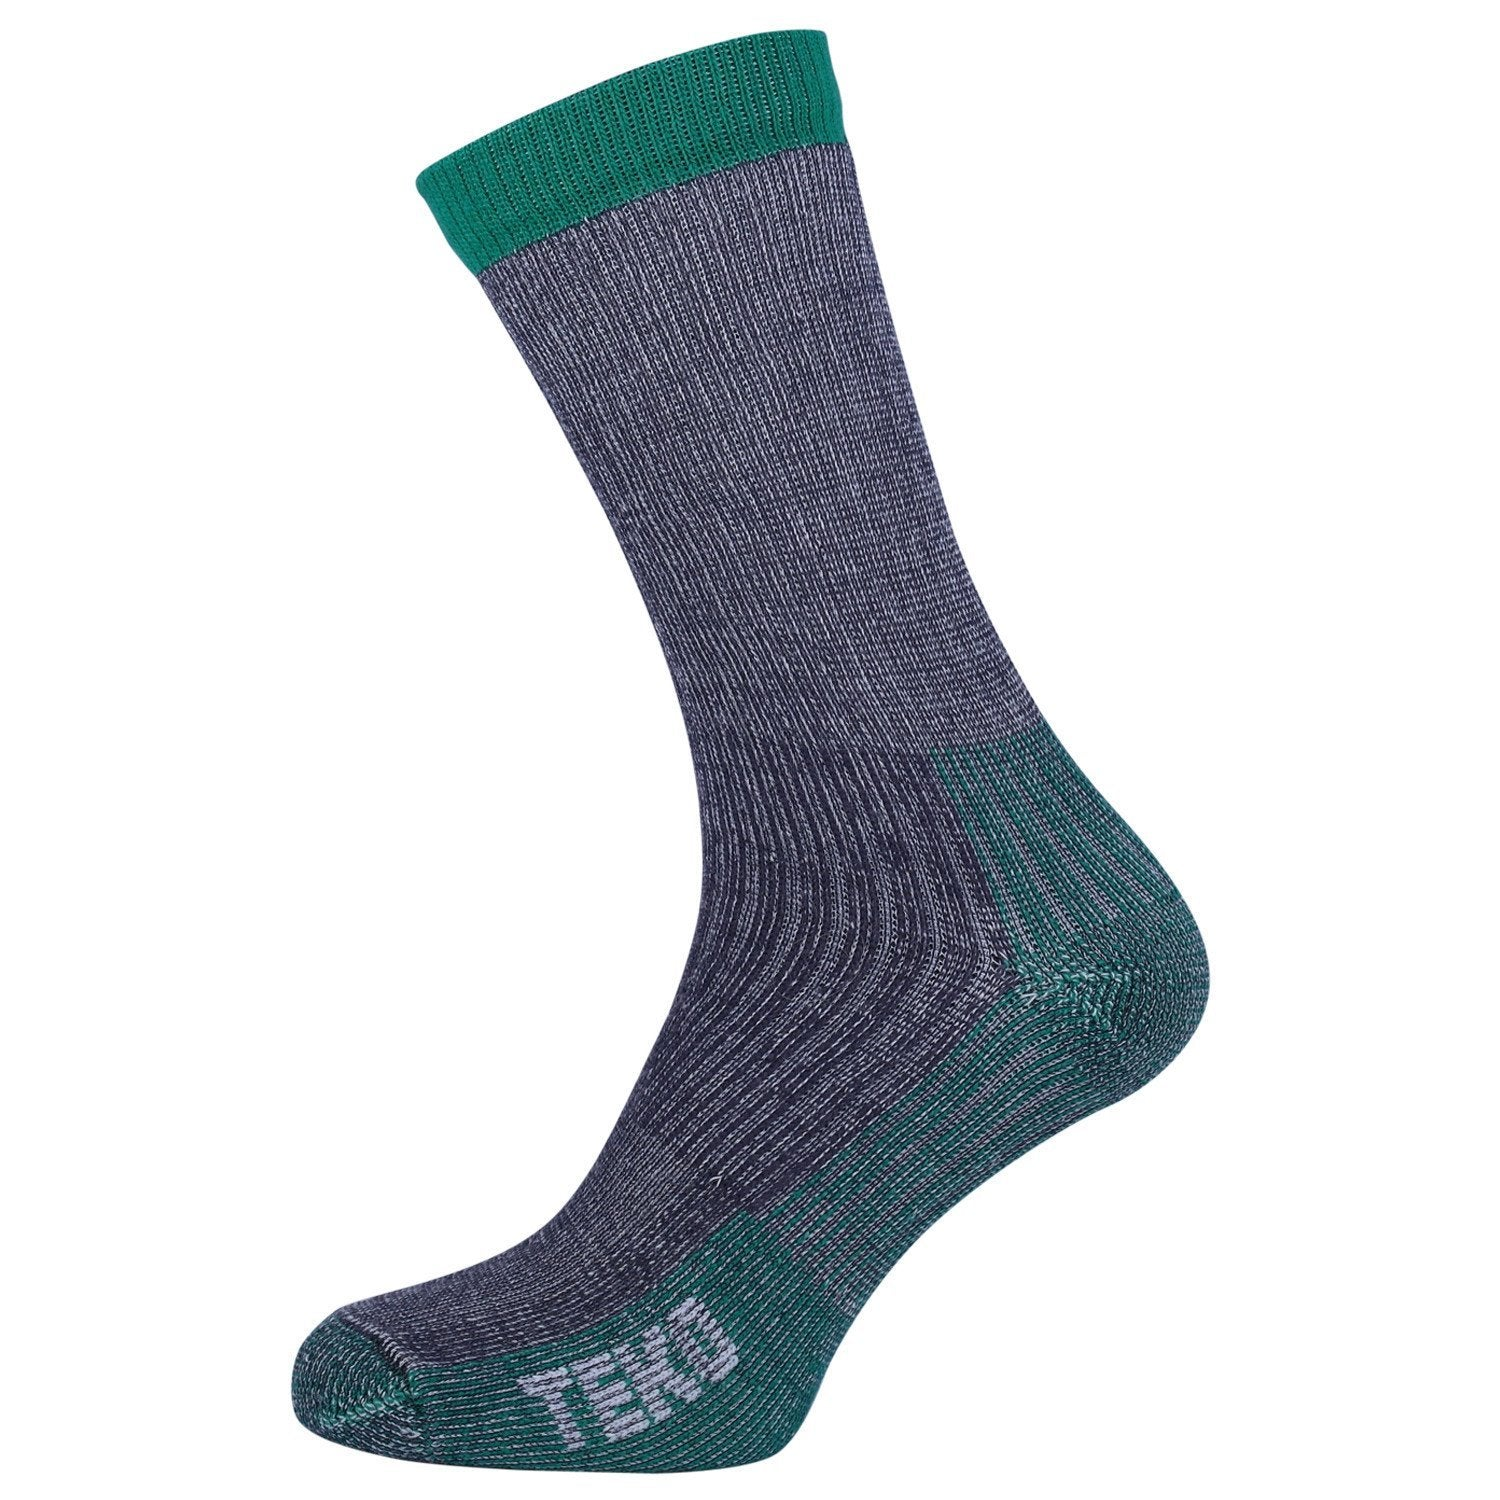 Teko Merino Medium Hiking Socks